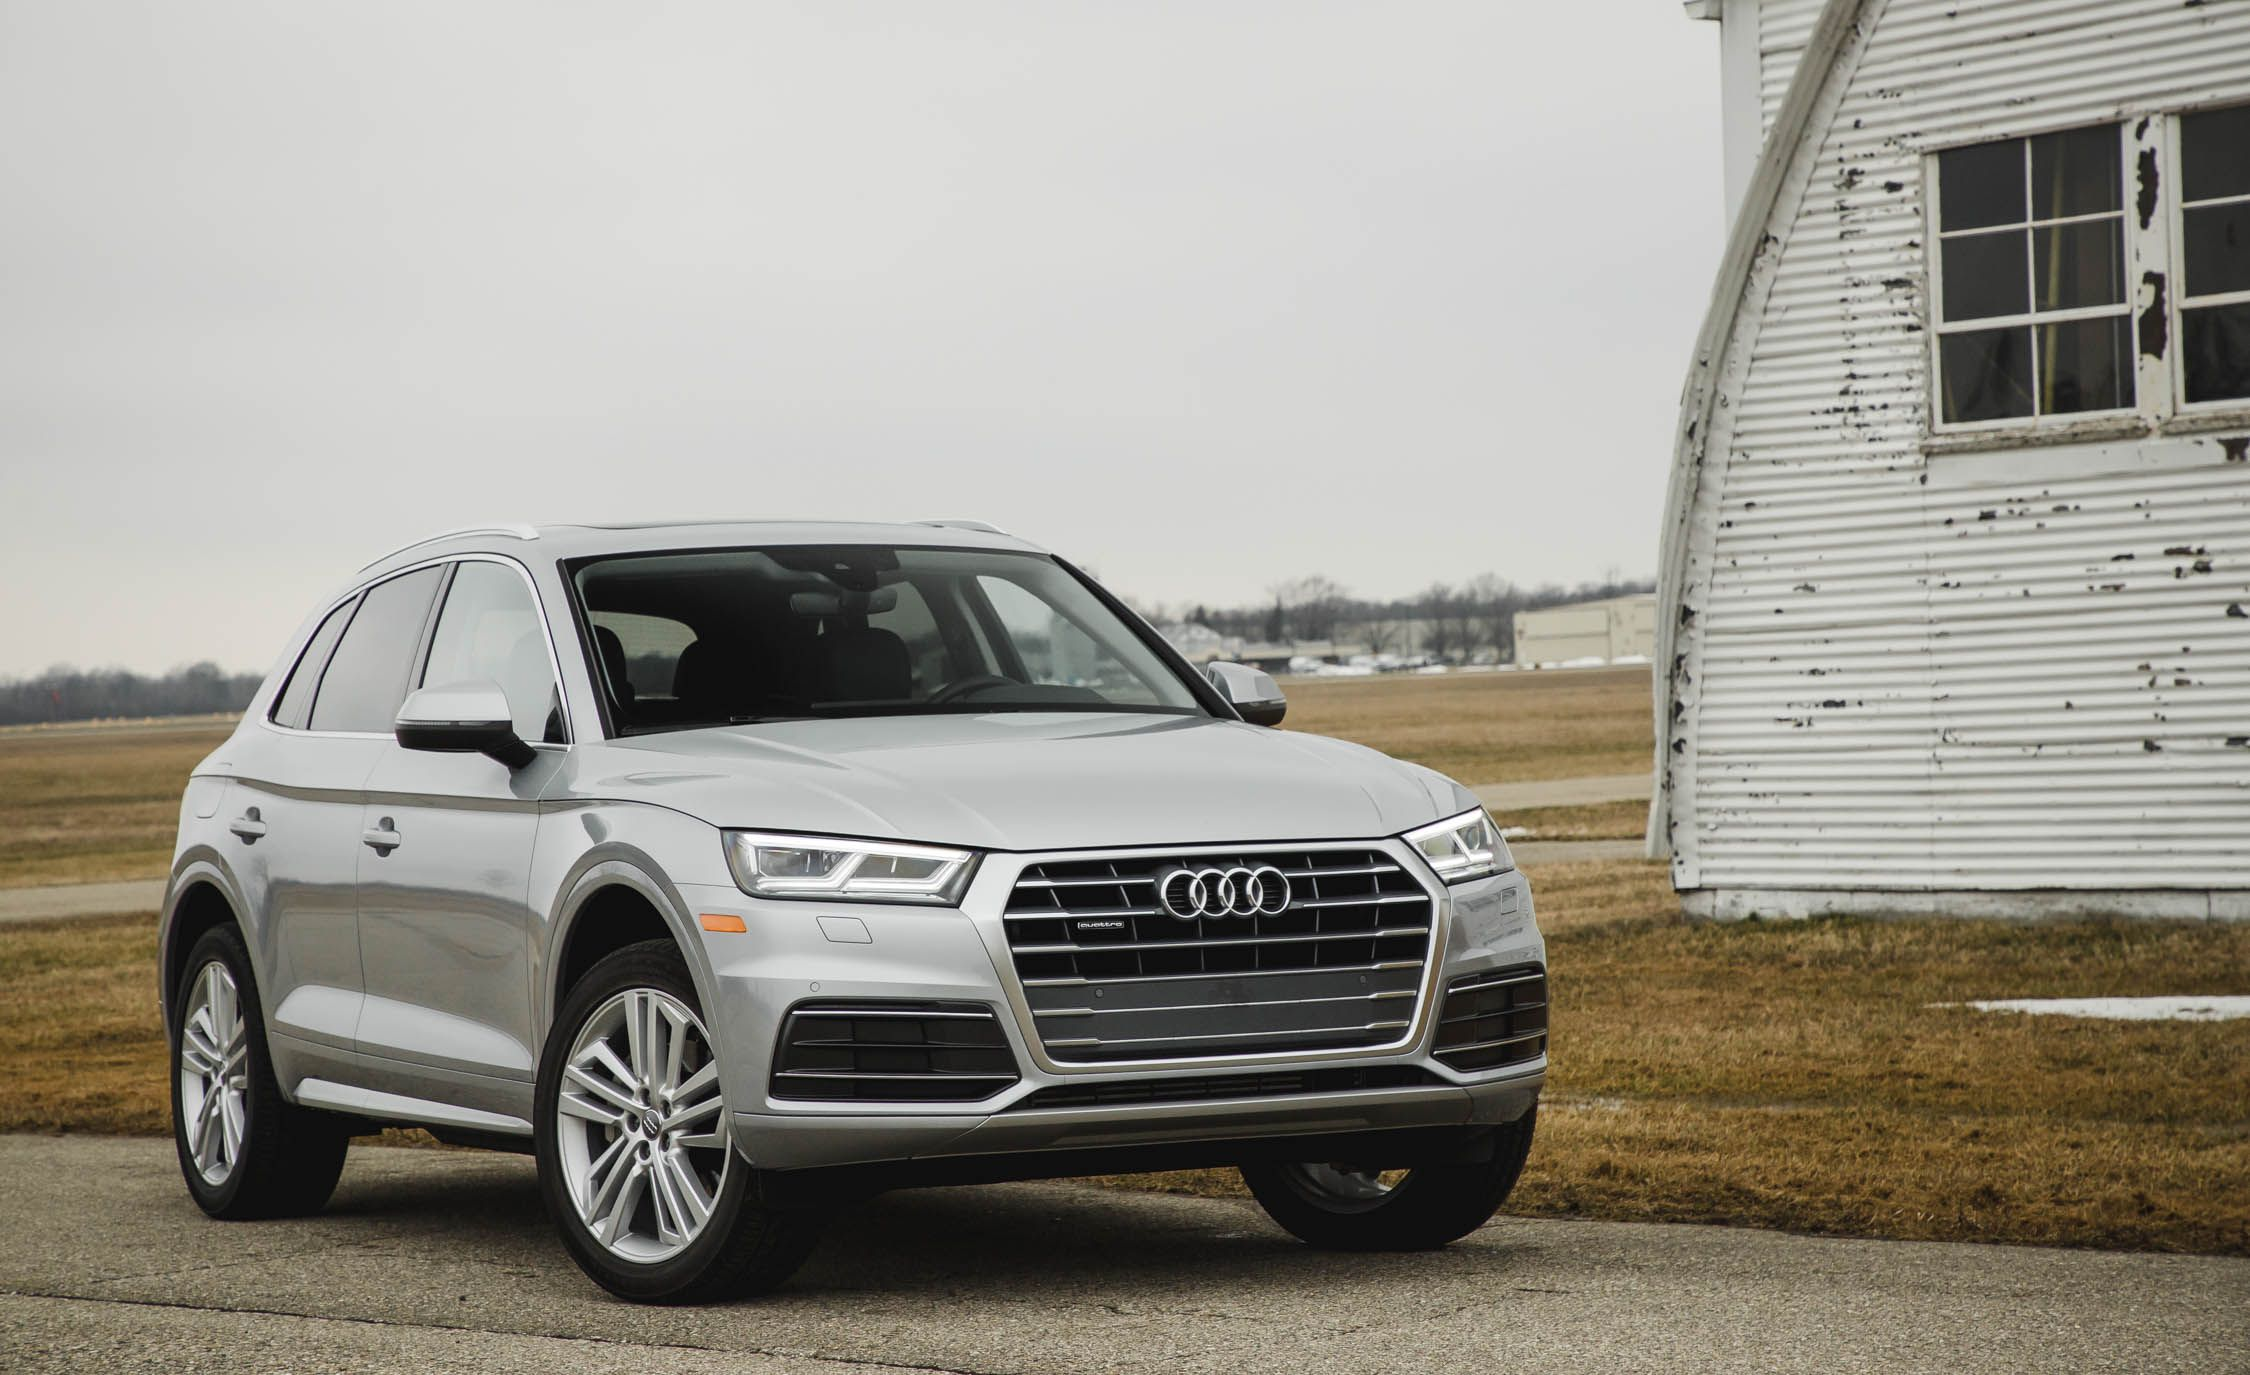 2018 audi q5 first drive review car and driver rh caranddriver com Audi A6 Audi A5